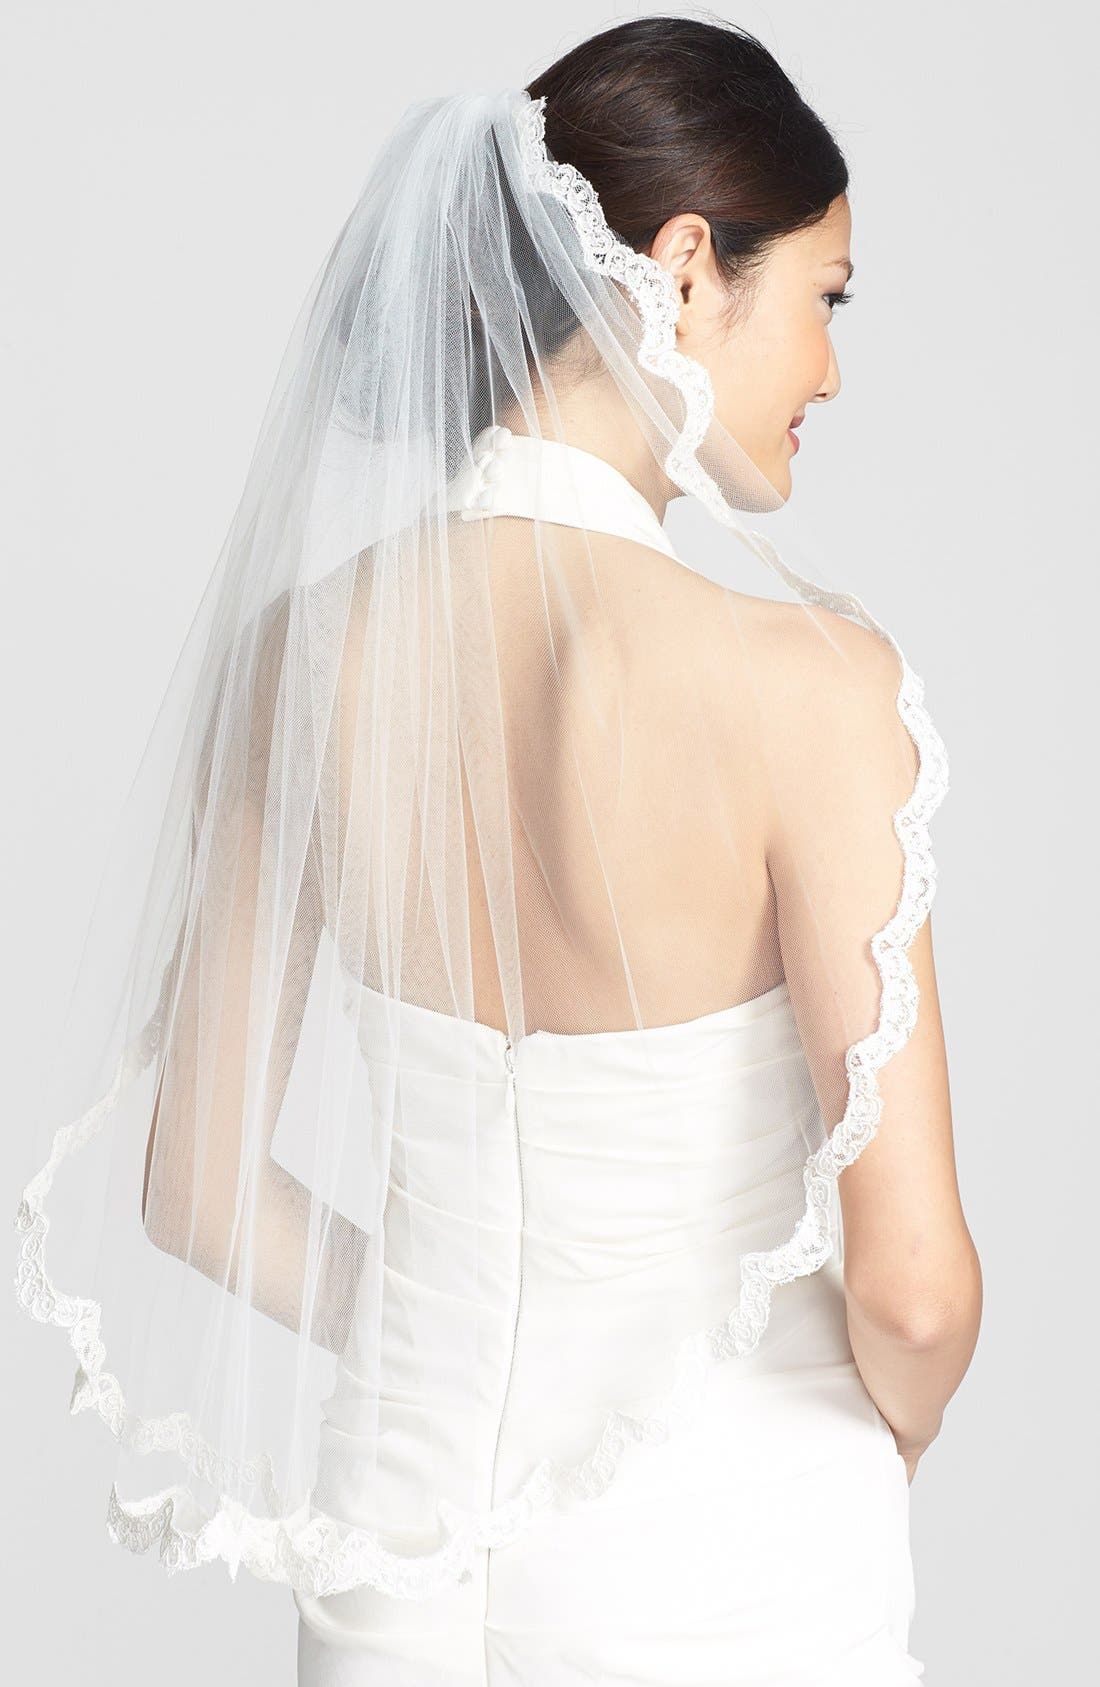 Alternate Image 1 Selected - Wedding Belles New York 'Lola' Lace Border Veil (Nordstrom Exclusive)